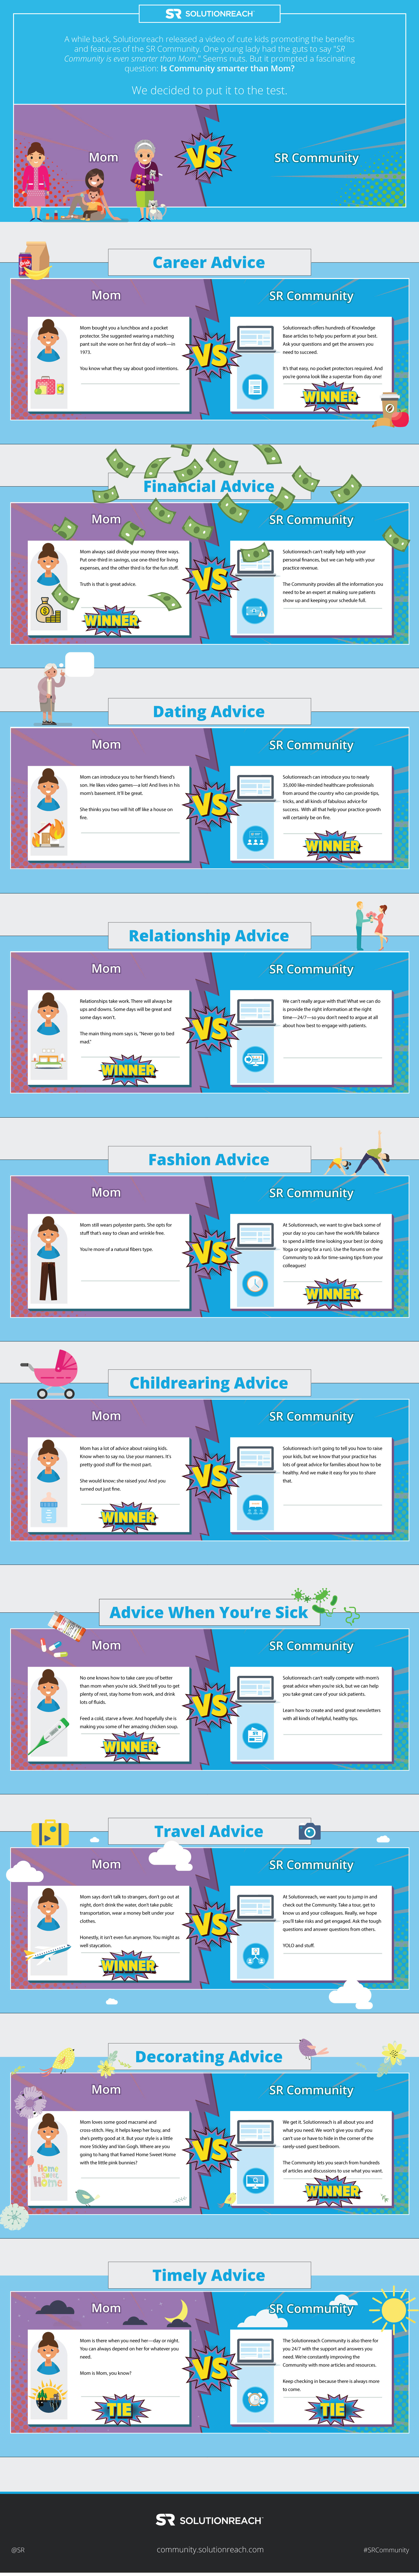 Is Community smarter than Mom?